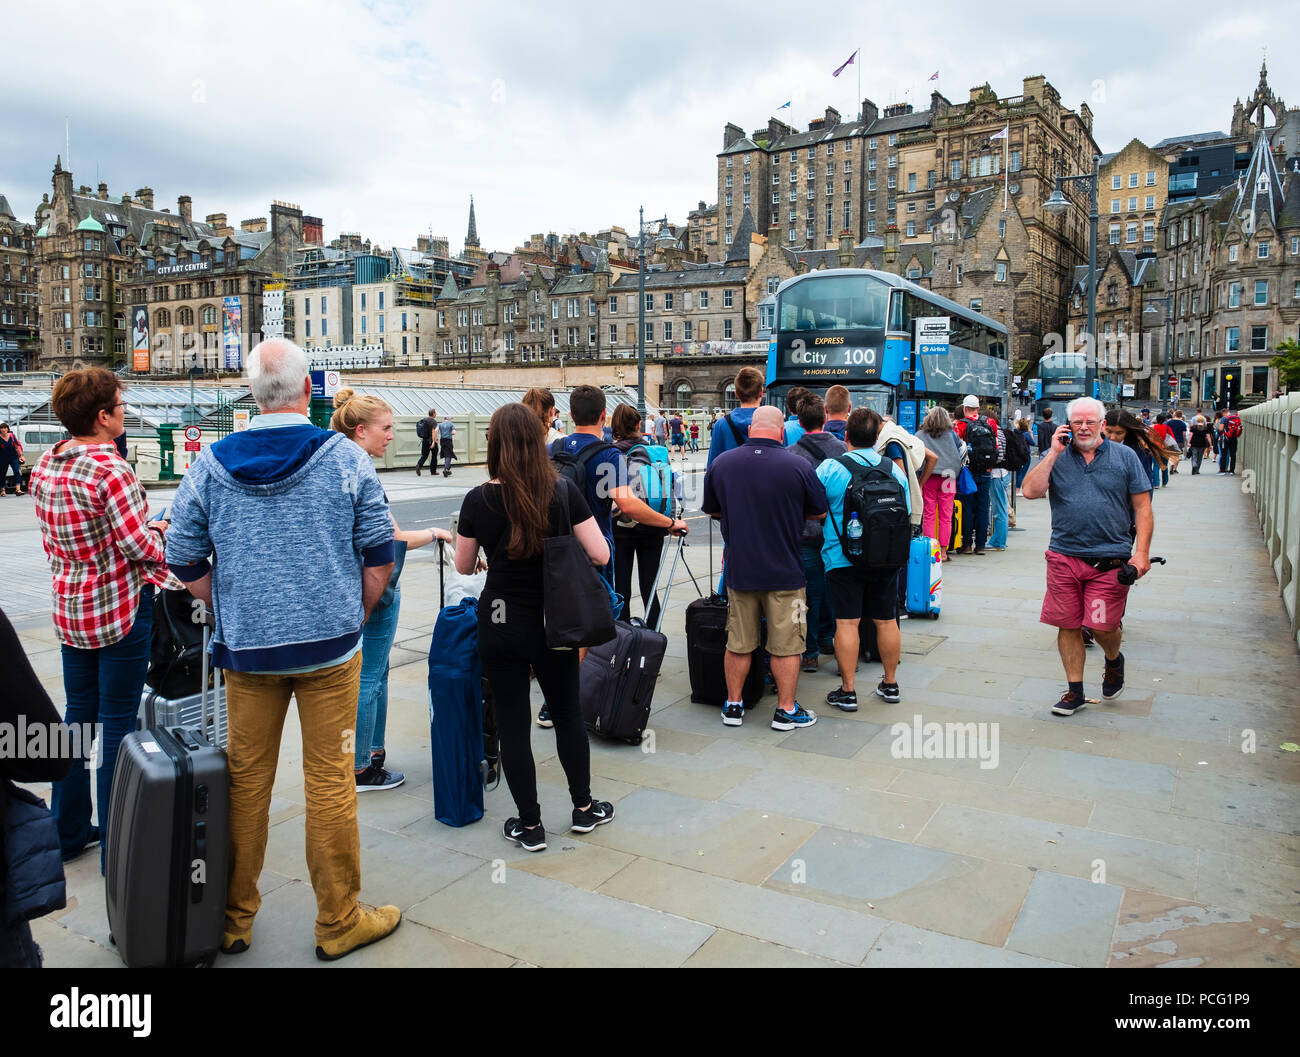 Edinburgh, Scotland, UK. 2nd August, 2018. At the start of the Edinburgh Festival many tourists are arriving in the city , however, many people are also leaving the city and heading to the airport, as this long queue for the airport Express 100 bus shows. Credit: Iain Masterton/Alamy Live News - Stock Image